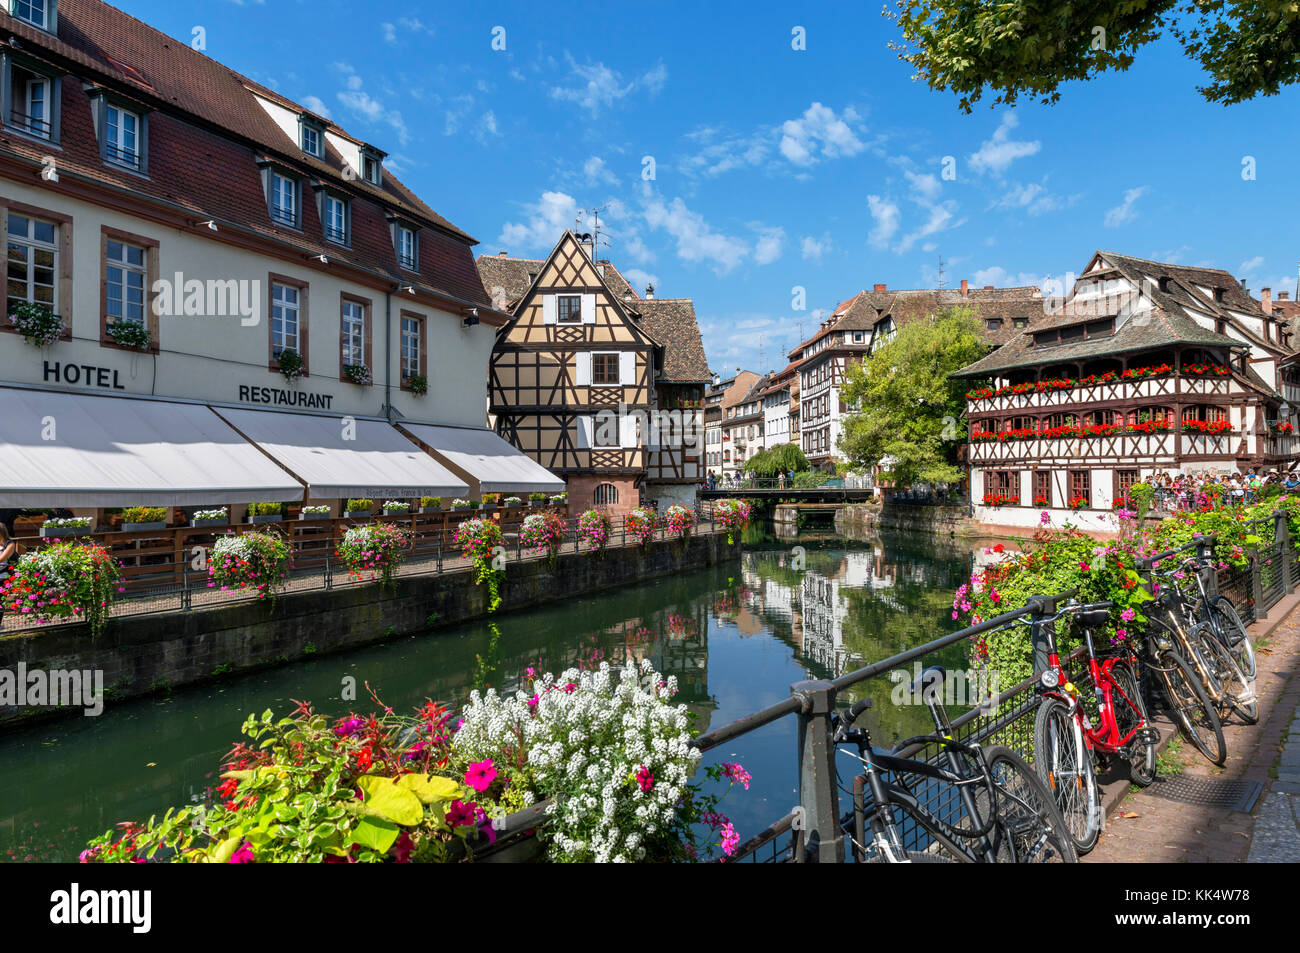 The River Ill in the historic Petite France district, Strasbourg, Alsace, France - Stock Image